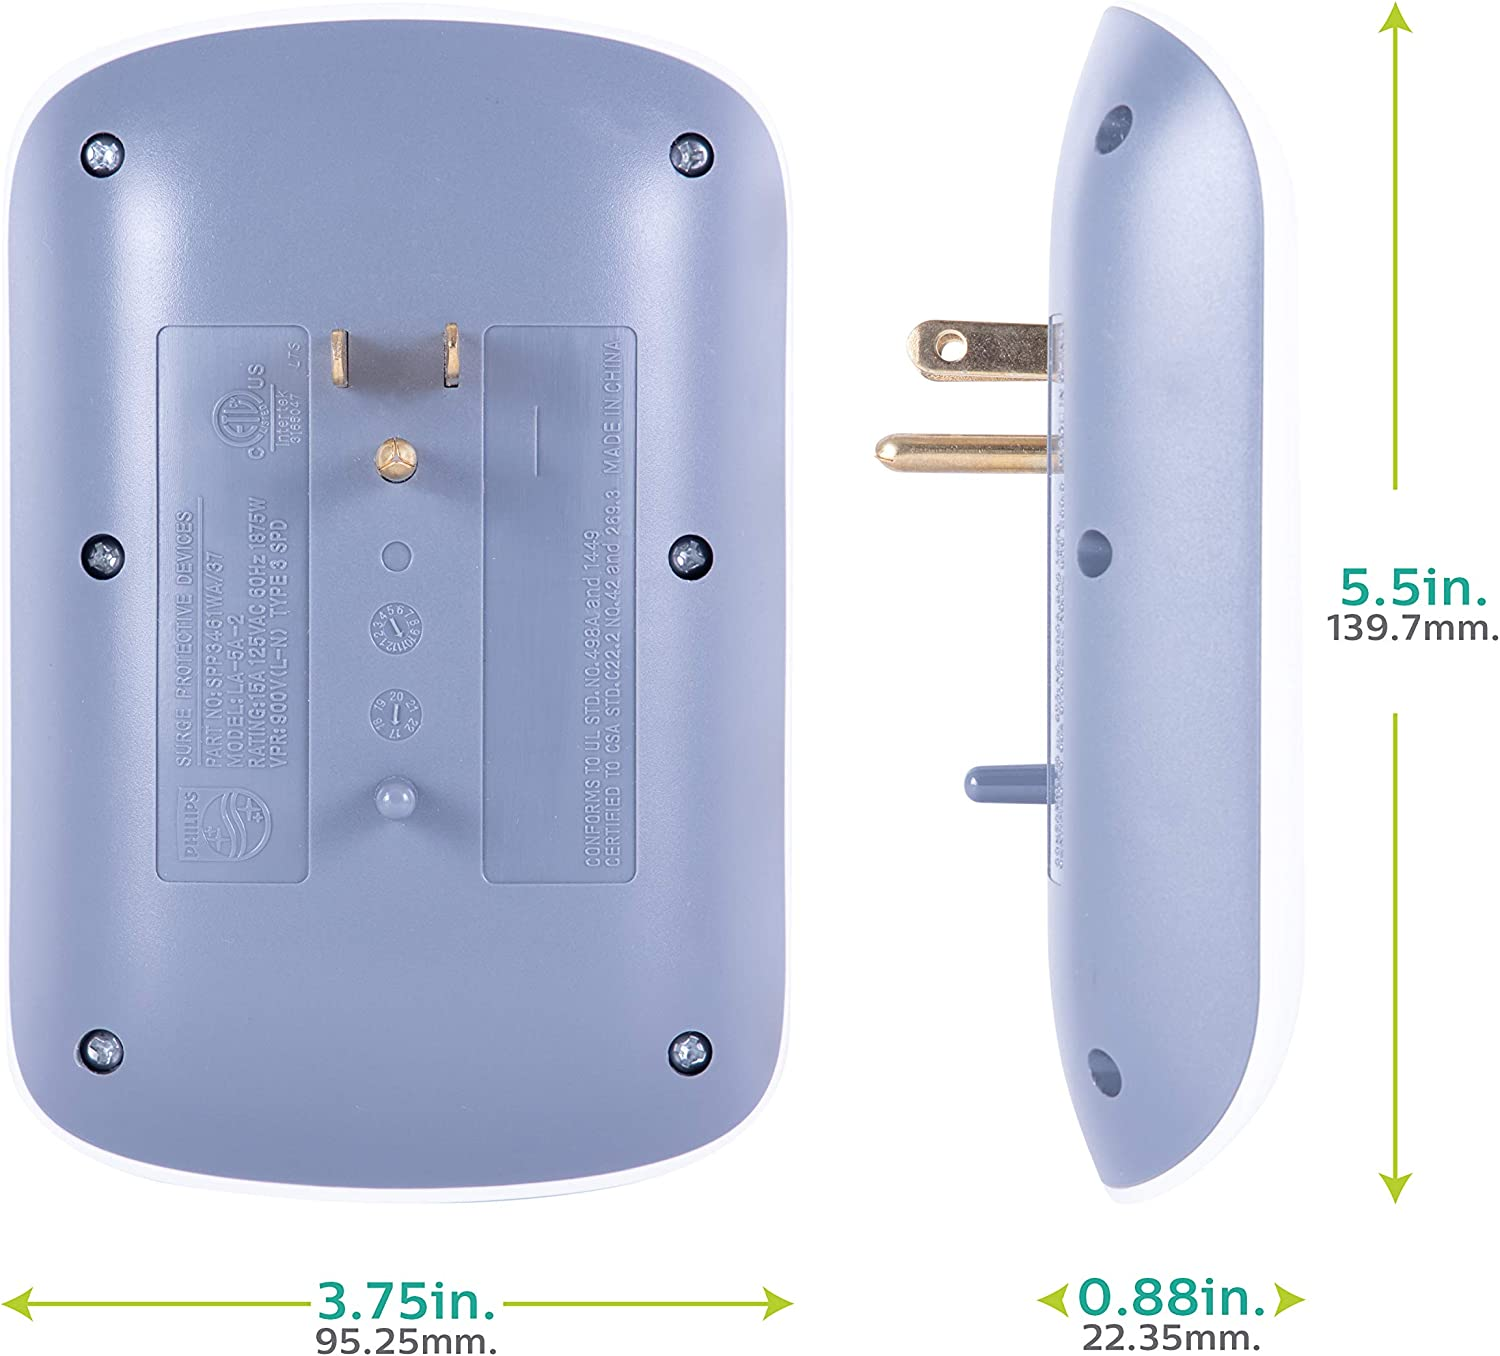 Philips 6-Outlet Extender Surge Protector, 2 Pack, Wall Tap, 900 Joules, 3-Prong, Space Saving Design, Protection Indicator LED Light, ETL Listed, White, SPP3466WA/37